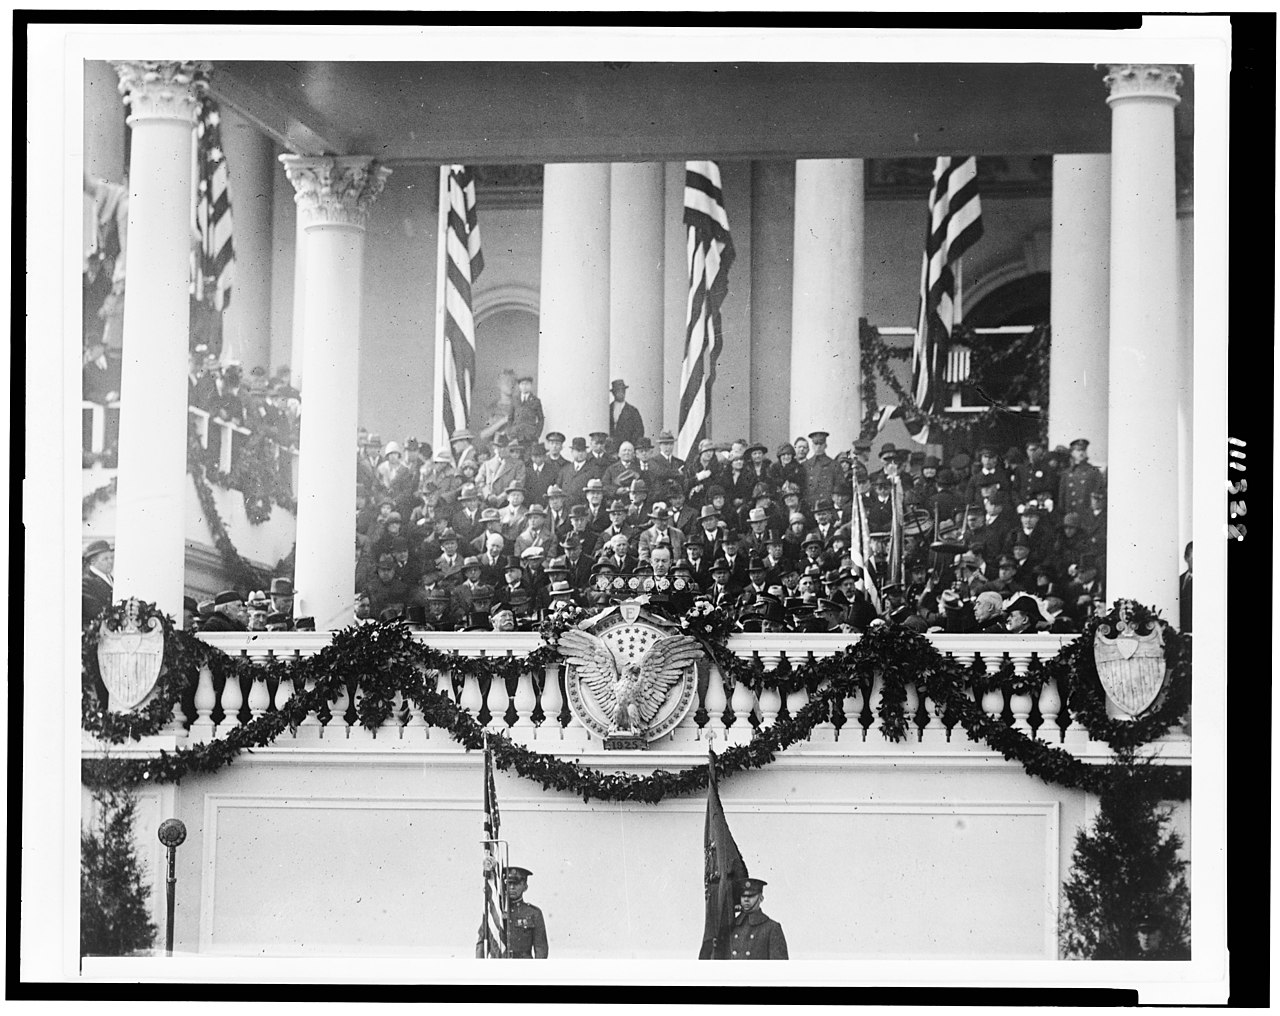 March 4 - Calvin Coolidge is sworn in for a full term as President of the United States, in the first inauguration to be broadcast on radio.